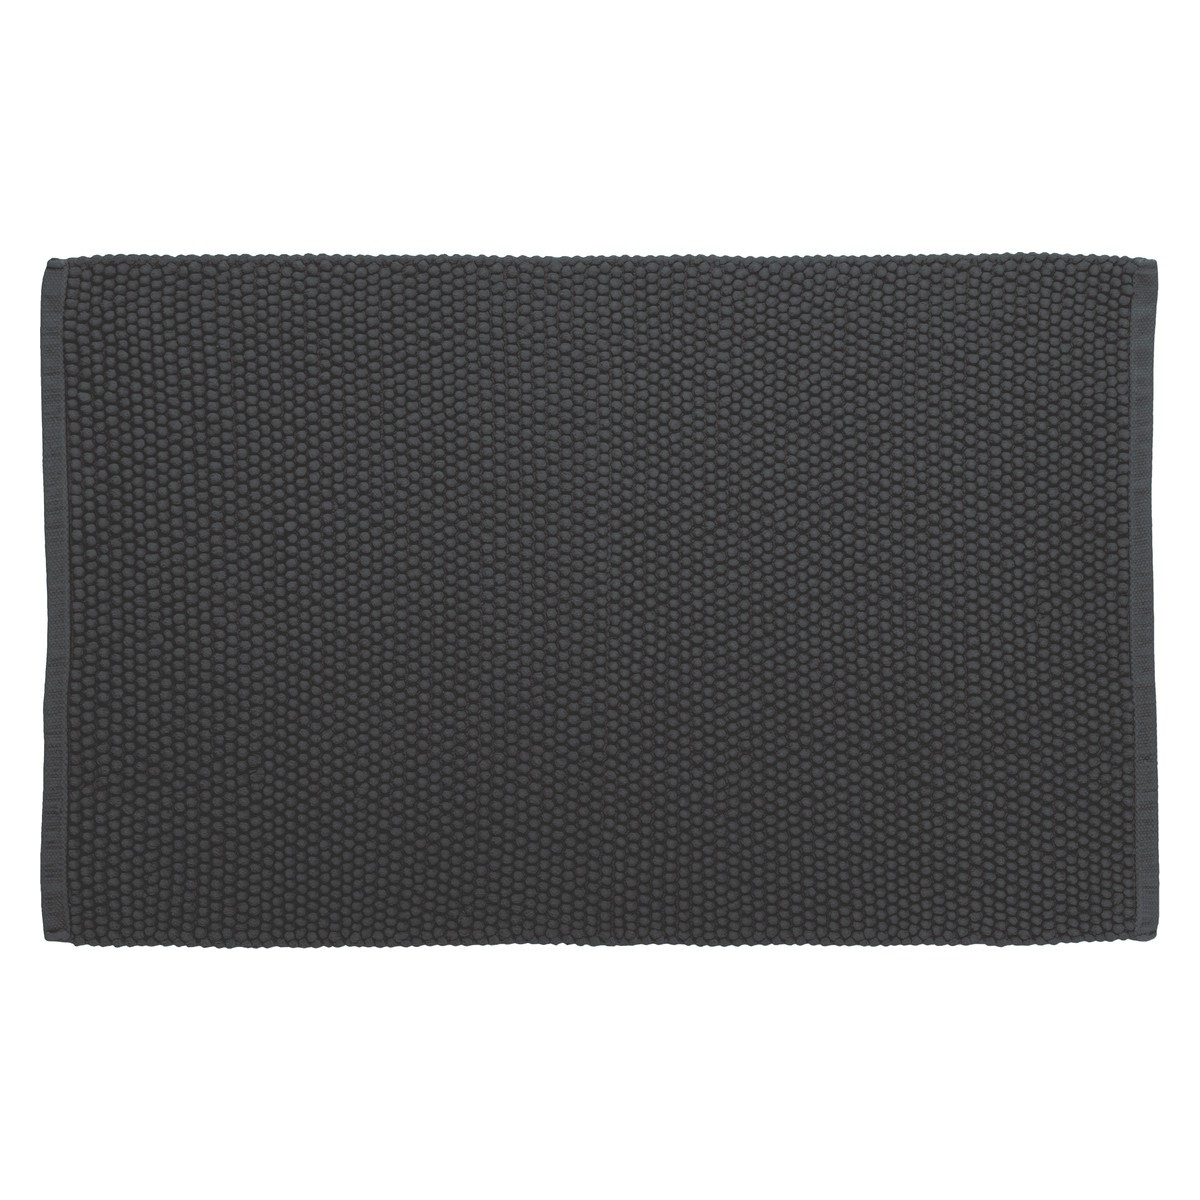 Habitat Shadi Bath Mat